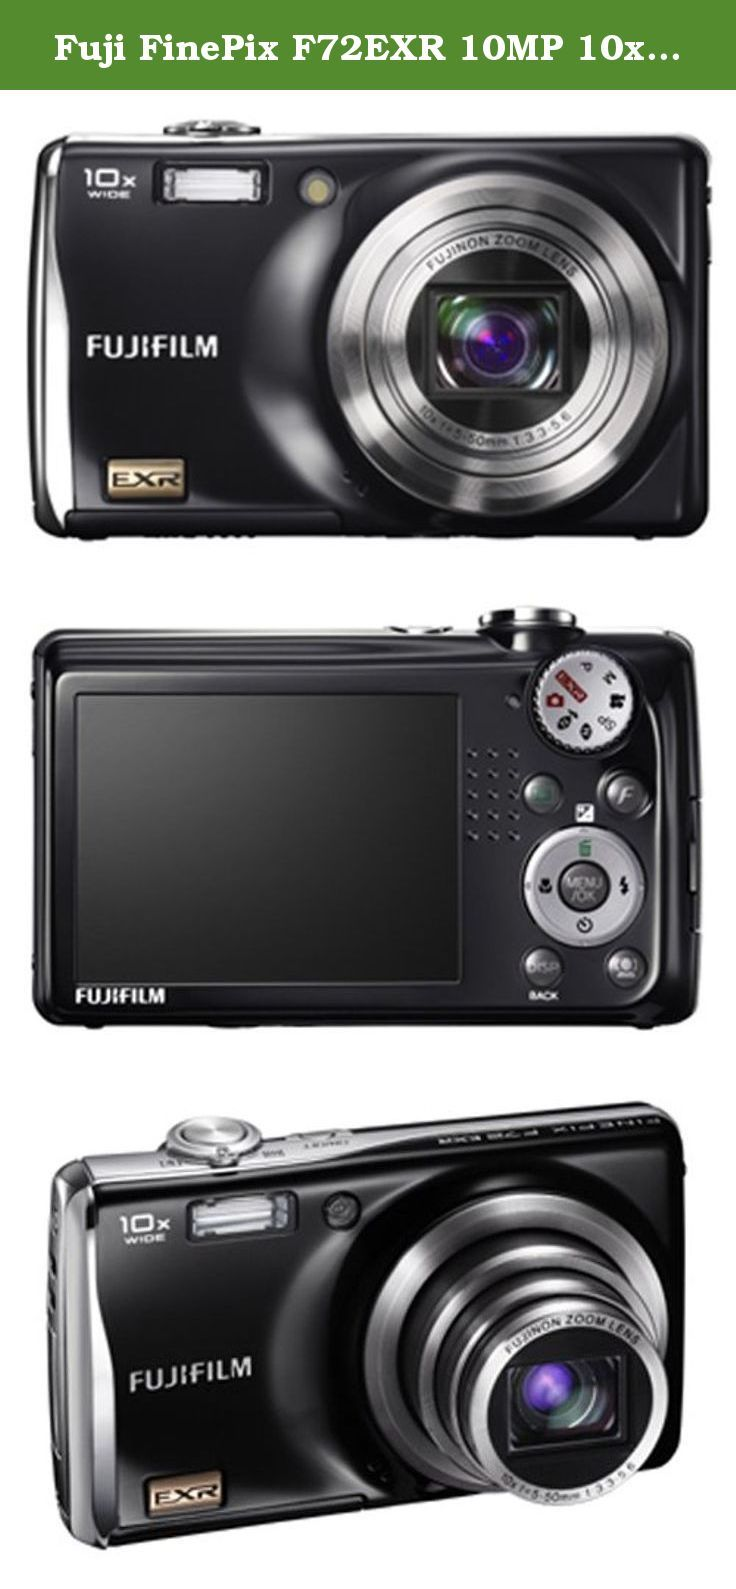 Fuji FinePix F72EXR 10MP 10x Optical/4x Digital Zoom HD Camera (Black). With a compact, stylish design and a stellar 10-megapixel lens, the Fuji FinePix F72EXR Digital Camera is an ideal camera for your busy social life. This black model sports a sleek and curvy design that's surprising small for a camera with 10x optical zoom. There's a large 2.7-inch LCD display to frame your shots, which also features a Micro Thumbnail view that allows you to view up to 100 images at once in a 10 x 10...